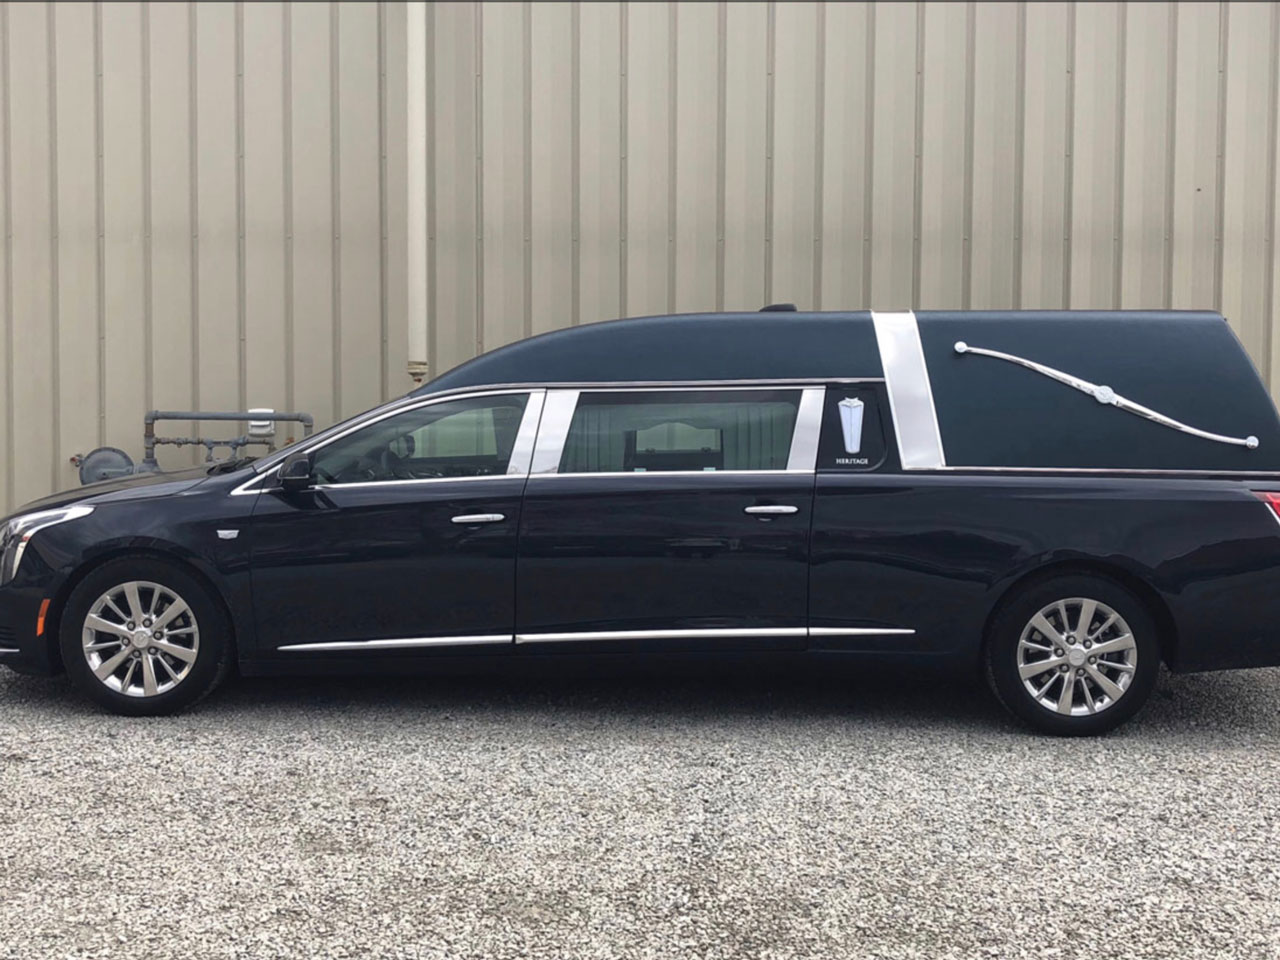 2019 Federal Coach Company Cadillac Federal Heritage Hearse 1